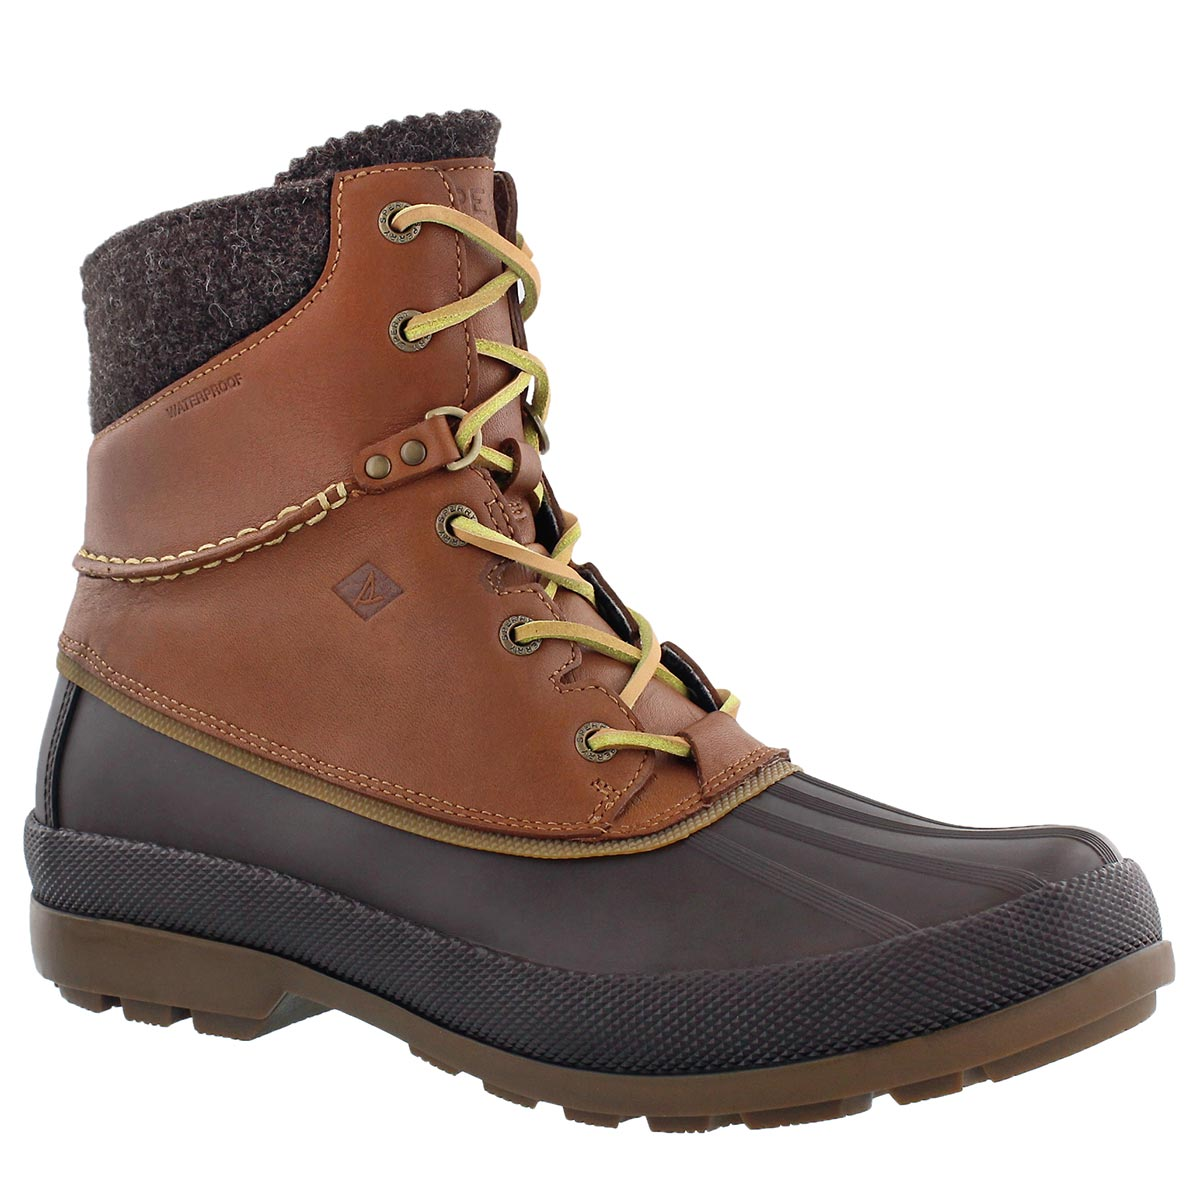 Sperry. Men's COLD BAY tan lined lace up boots